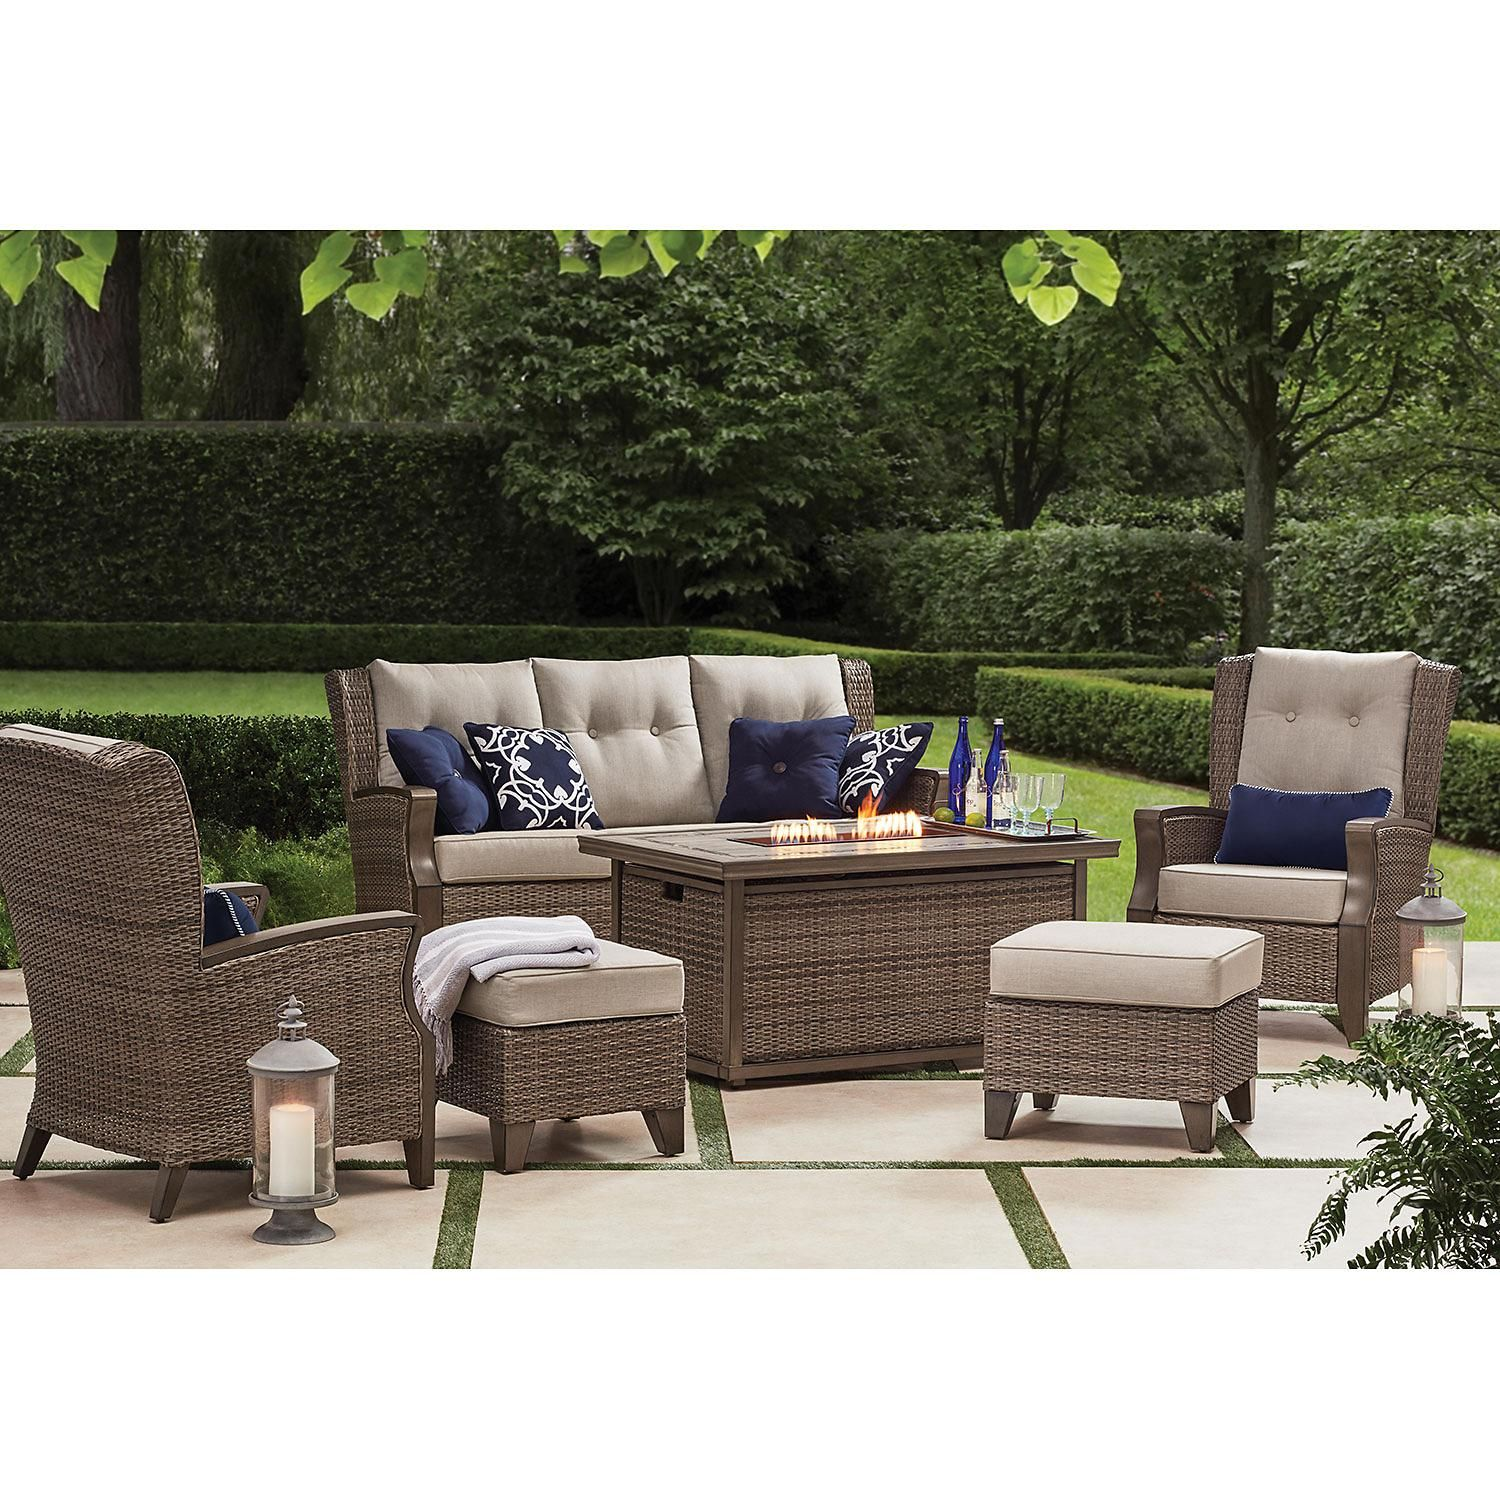 Member S Mark Agio Newcastle 6 Piece Patio Deep Seating Set With Fire Pit And Sunbrella Fabric Cast Ash Sam S Club Deep Seating Patio Furniture Deep Seating Outdoor Seating Set